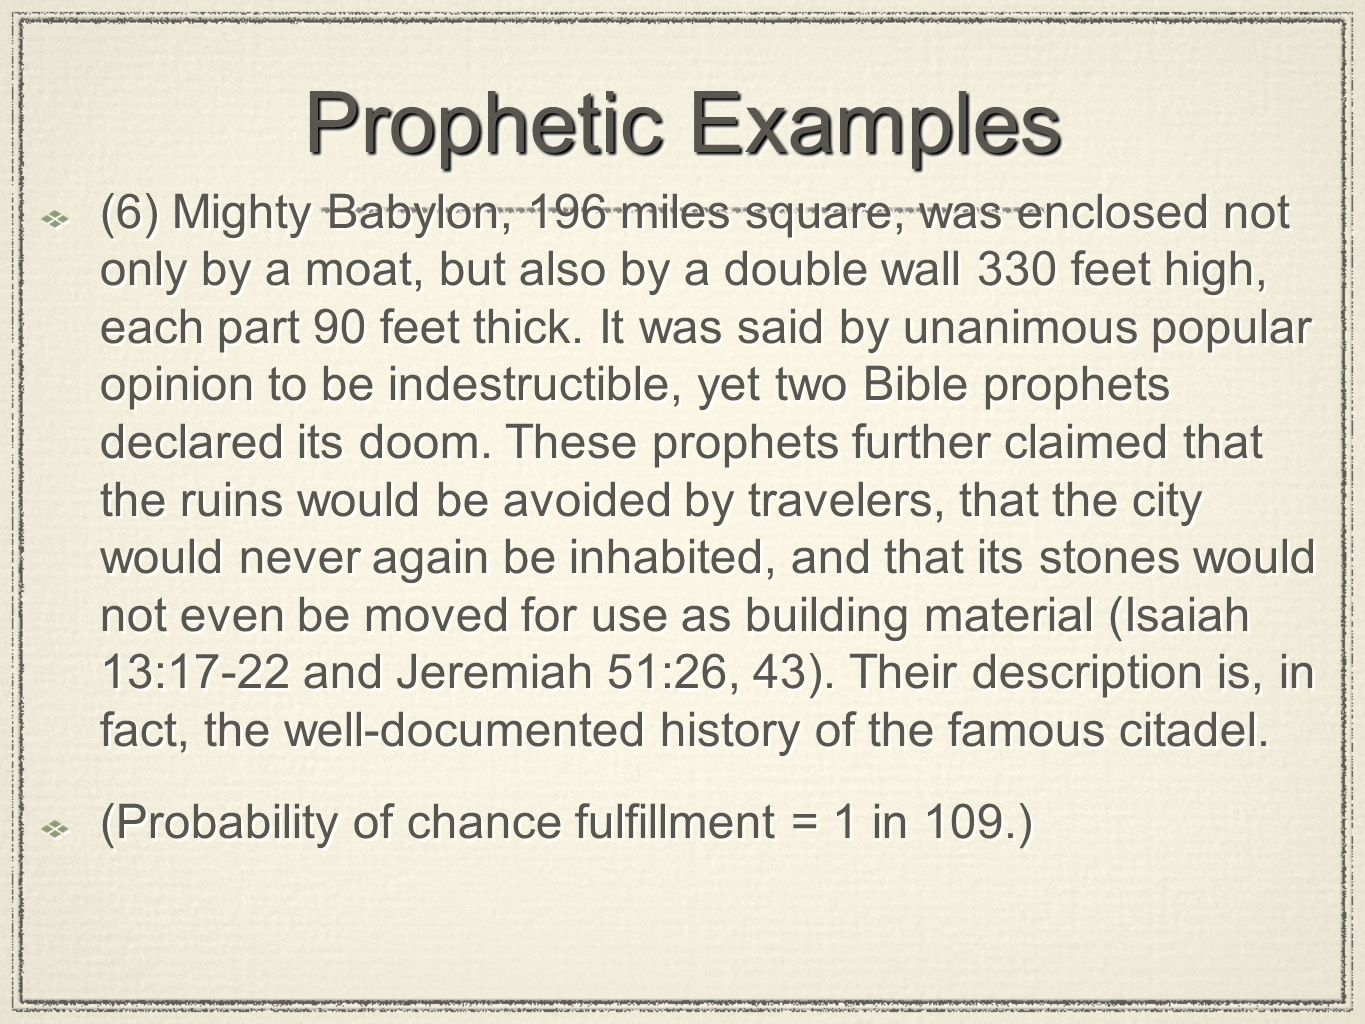 Prophetic Examples (6) Mighty Babylon, 196 miles square, was enclosed not only by a moat, but also by a double wall 330 feet high, each part 90 feet t